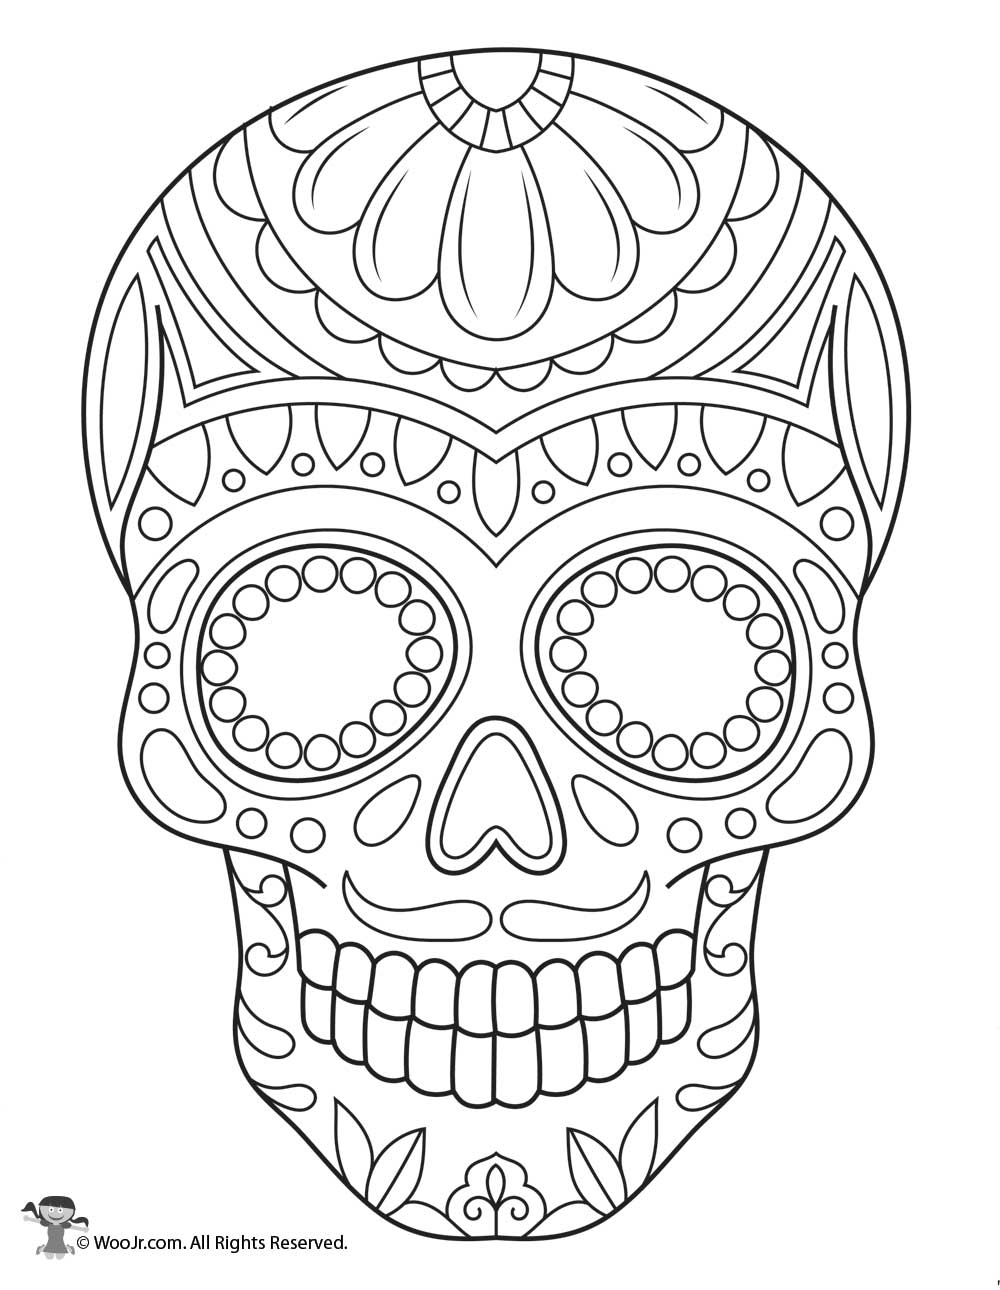 sugar skull coloring pages printable sugar skull coloring page woo jr kids activities skull coloring sugar printable pages